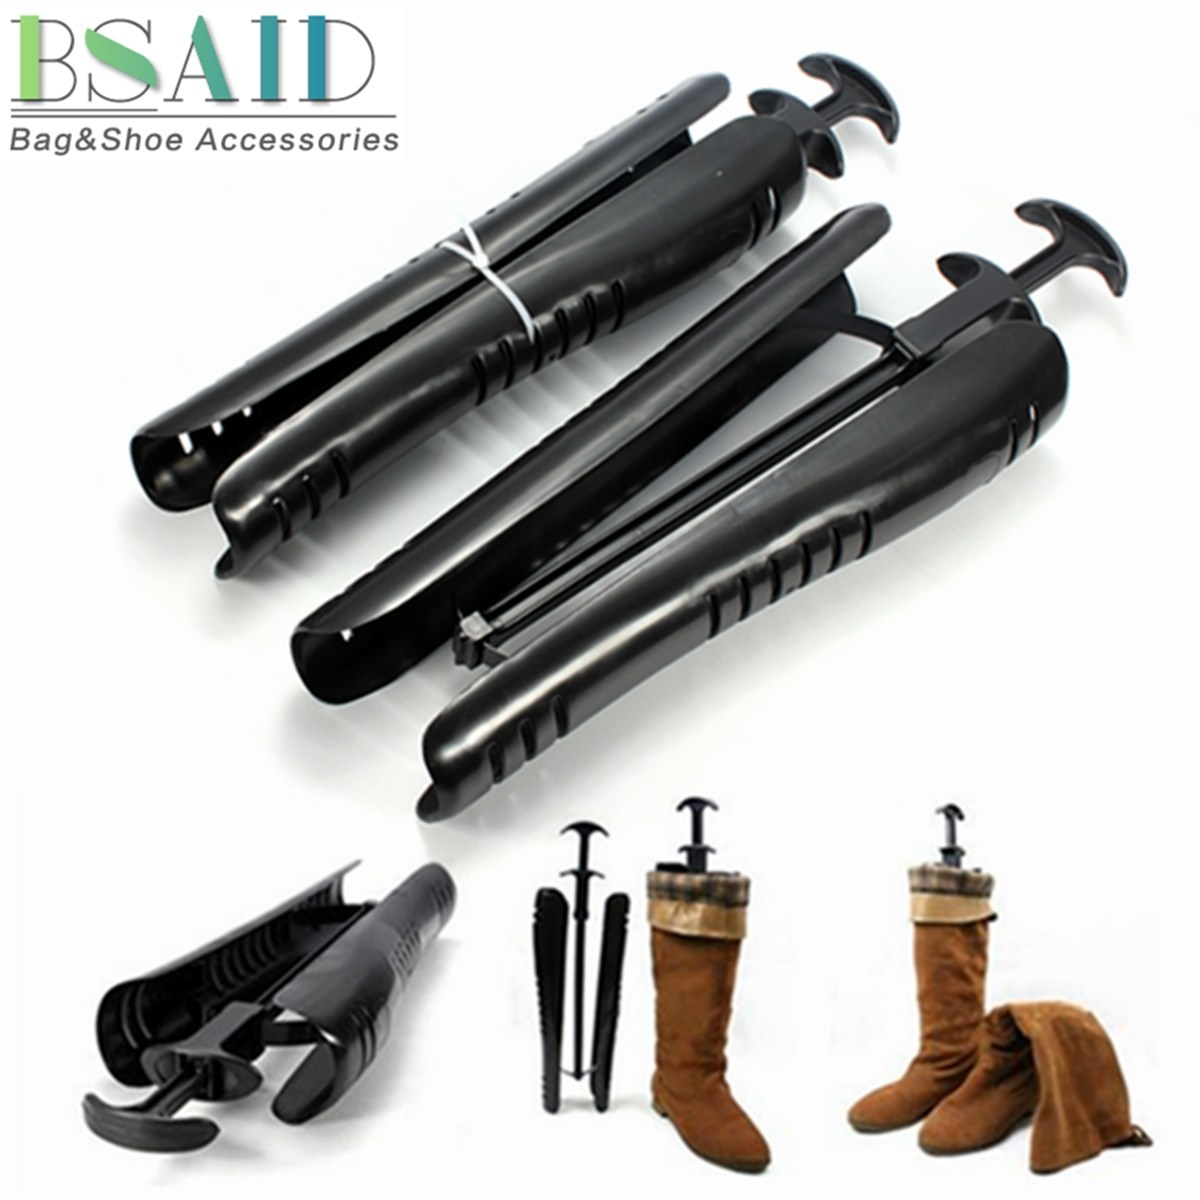 BSAID 1 Pair Long Shaper Supporter Boot Stand Boots Expander, Shoe Stretcher Shoes Tree Rack Support Shaft Keeper Holder Storage lhbl 1 pair 12 1 2 inch boot stretcher shaper shoe tree with handle